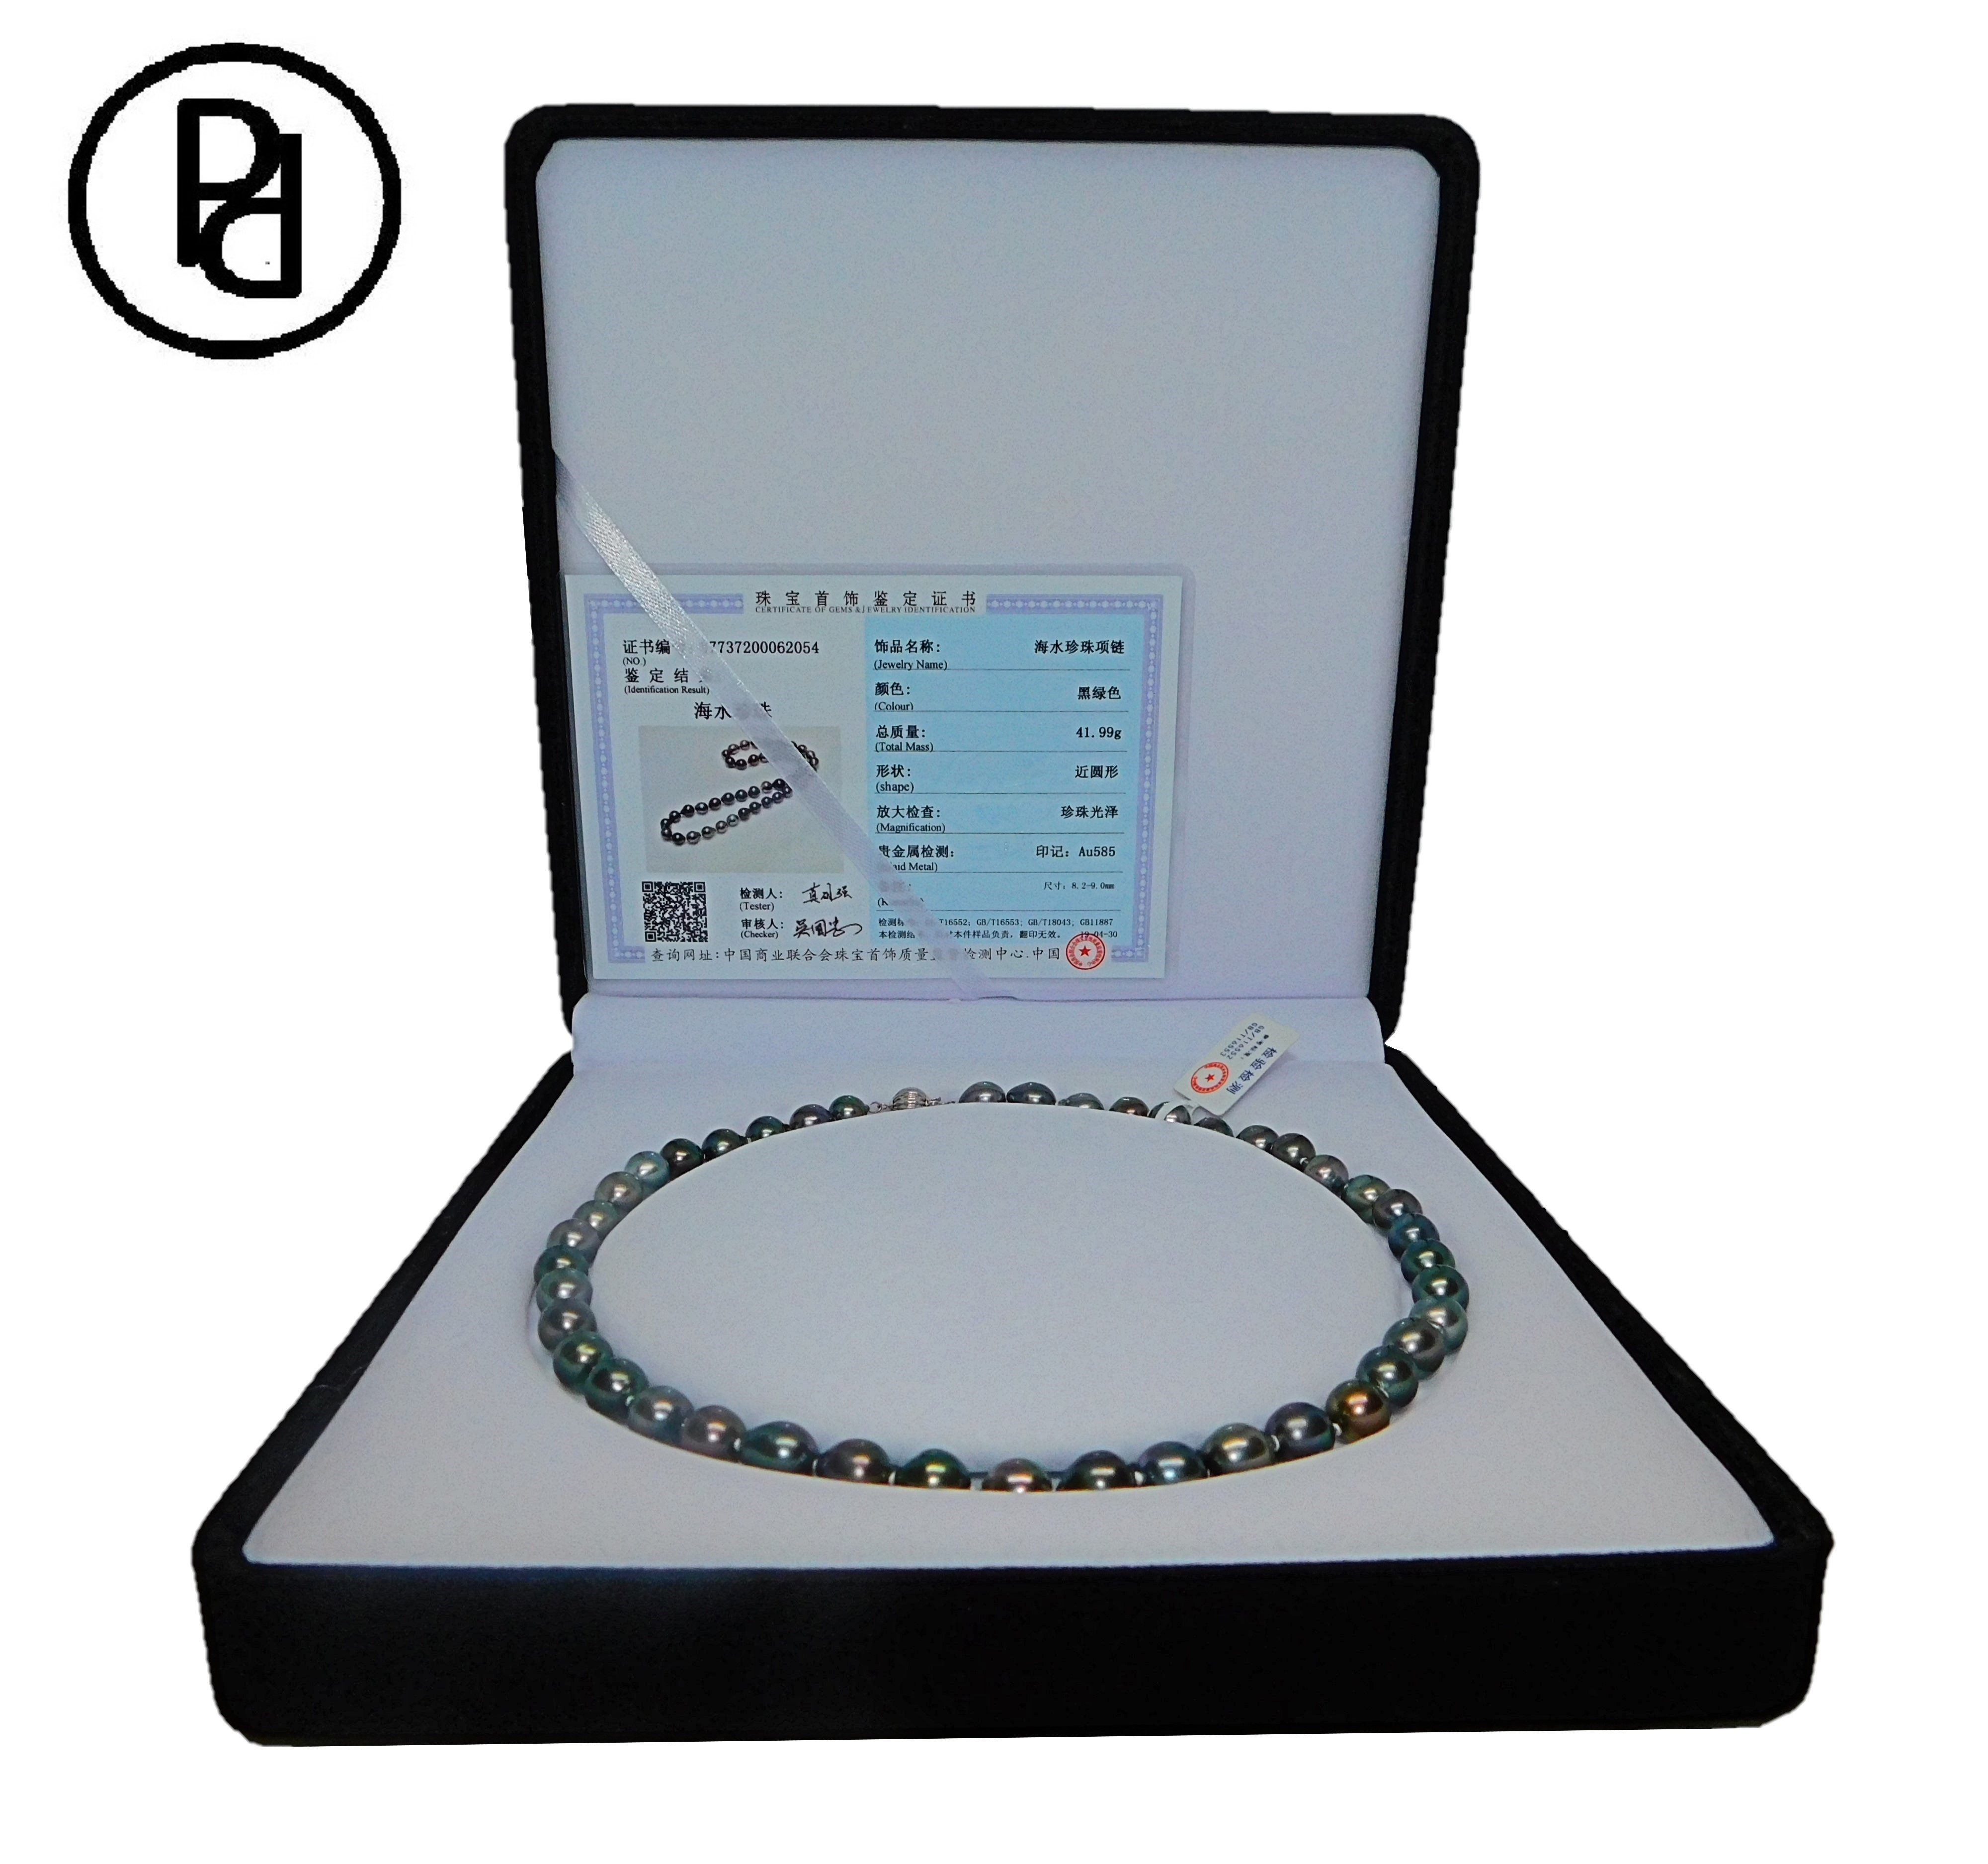 This elegant necklace features 10.0-12.0mm Tahitian South Sea pearls, handpicked for their luminous luster